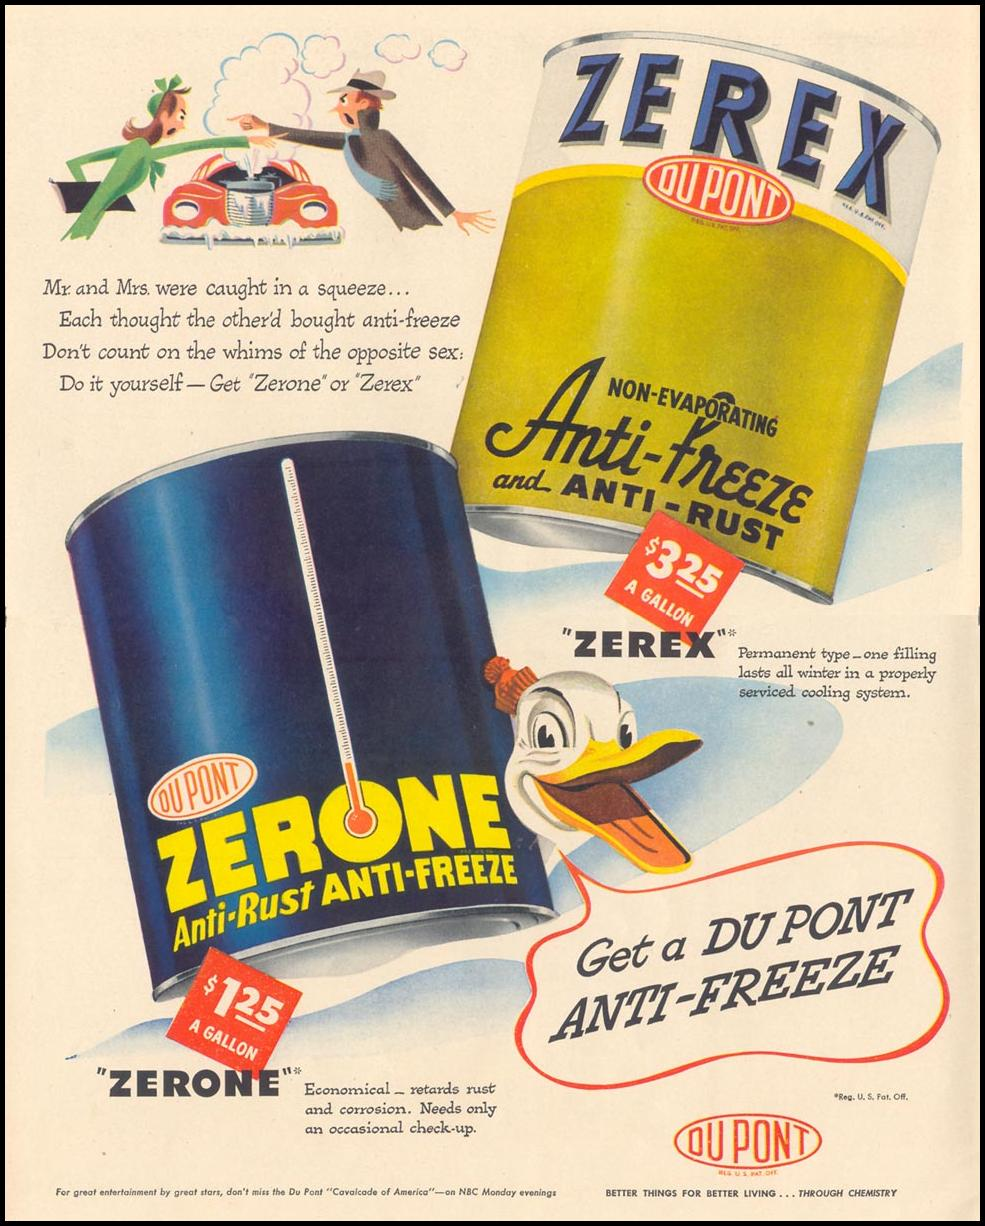 DU PONT ZEREX AND ZERONE ANTI-FREEZE LIFE 11/15/1948